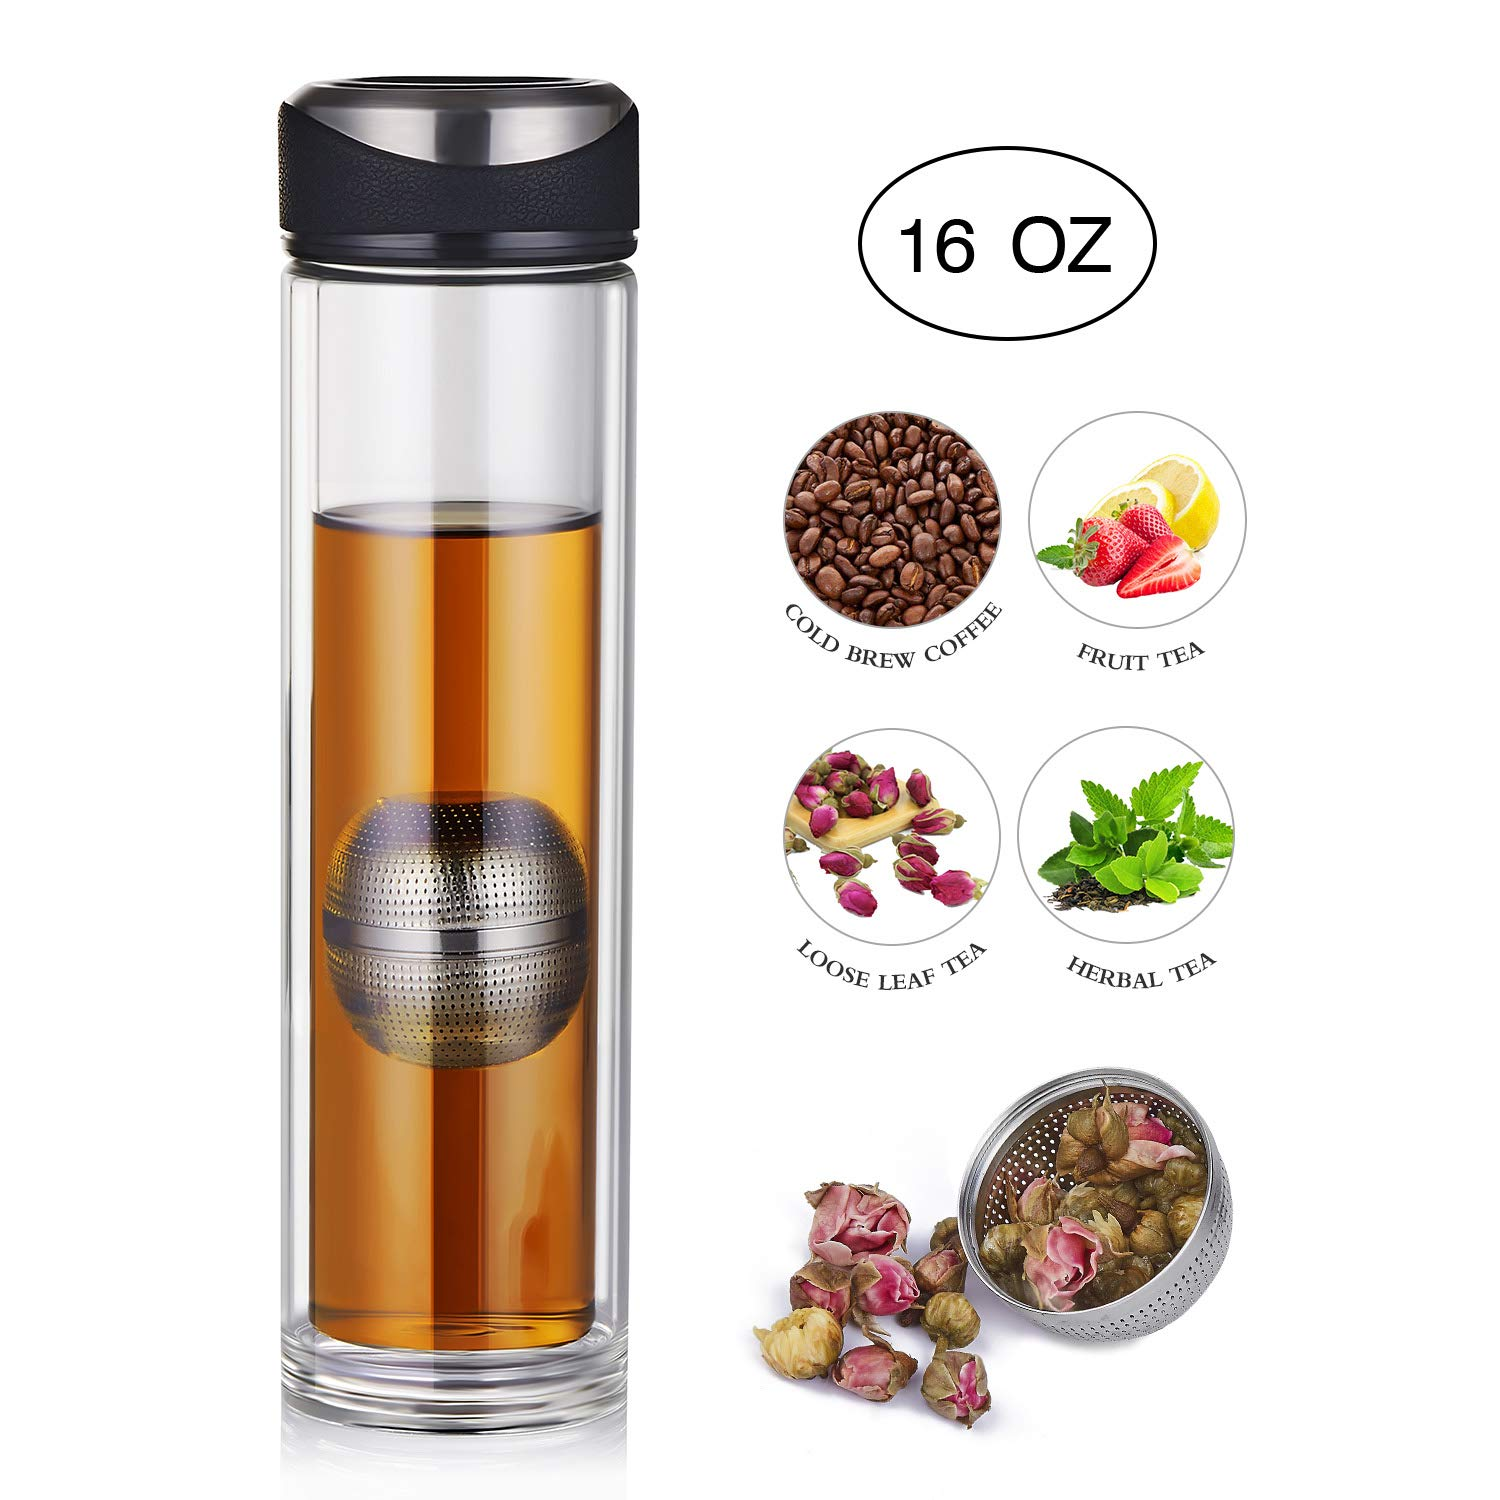 YEOSEN Tea Infuser Bottle - Magnetic Tea Tumbler with Tea Infuser - Leakproof Tea Bottle for Loose Leaf Tea - Double Wall Glass Tea Infuser Travel Mug for Hot or Cold Water 16oz by YEOSEN